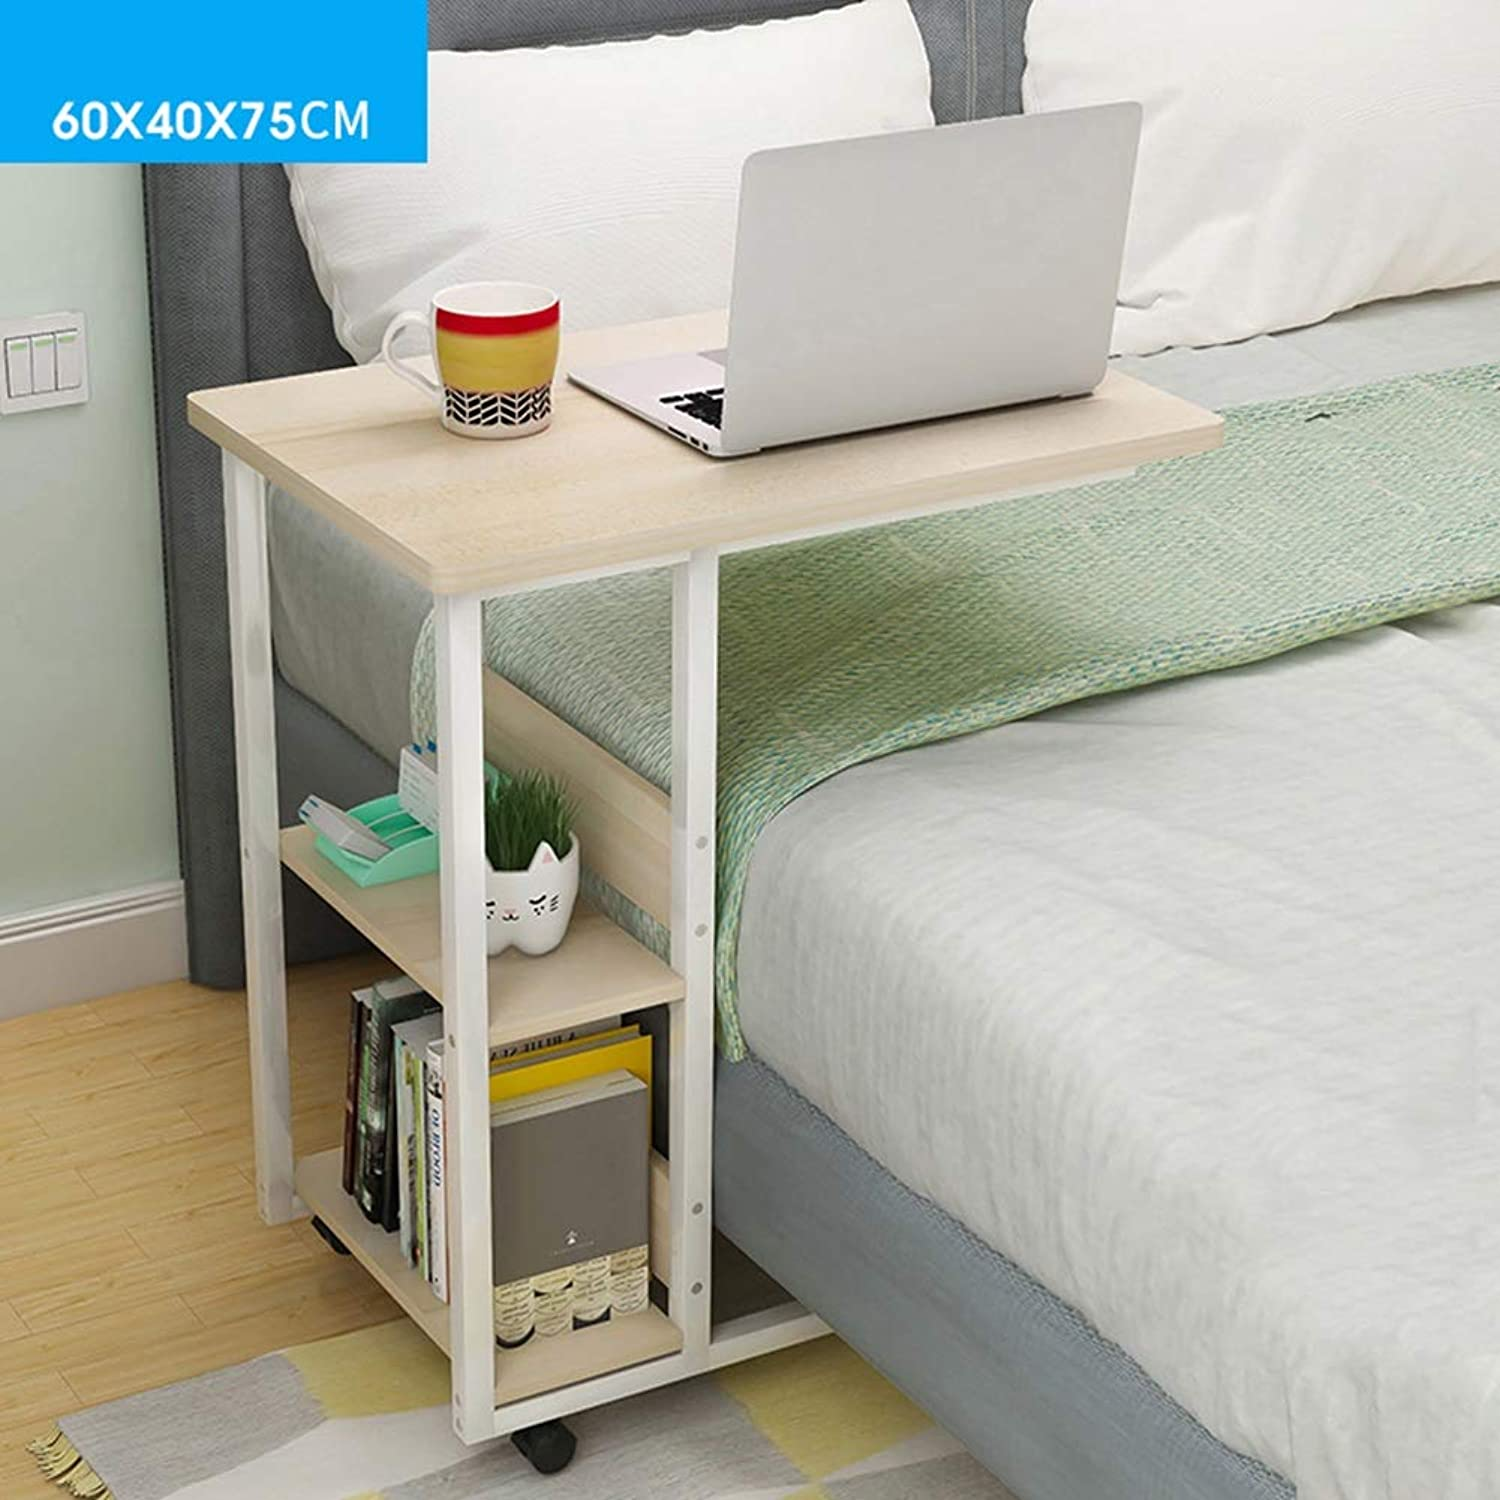 Coffee Table Side Table, Laptop Table It Can Move Multifunction Simple Desk Lazy Bedside Table, Dorm Room, Balcony (color   White Maple, Size   60  40 cm)